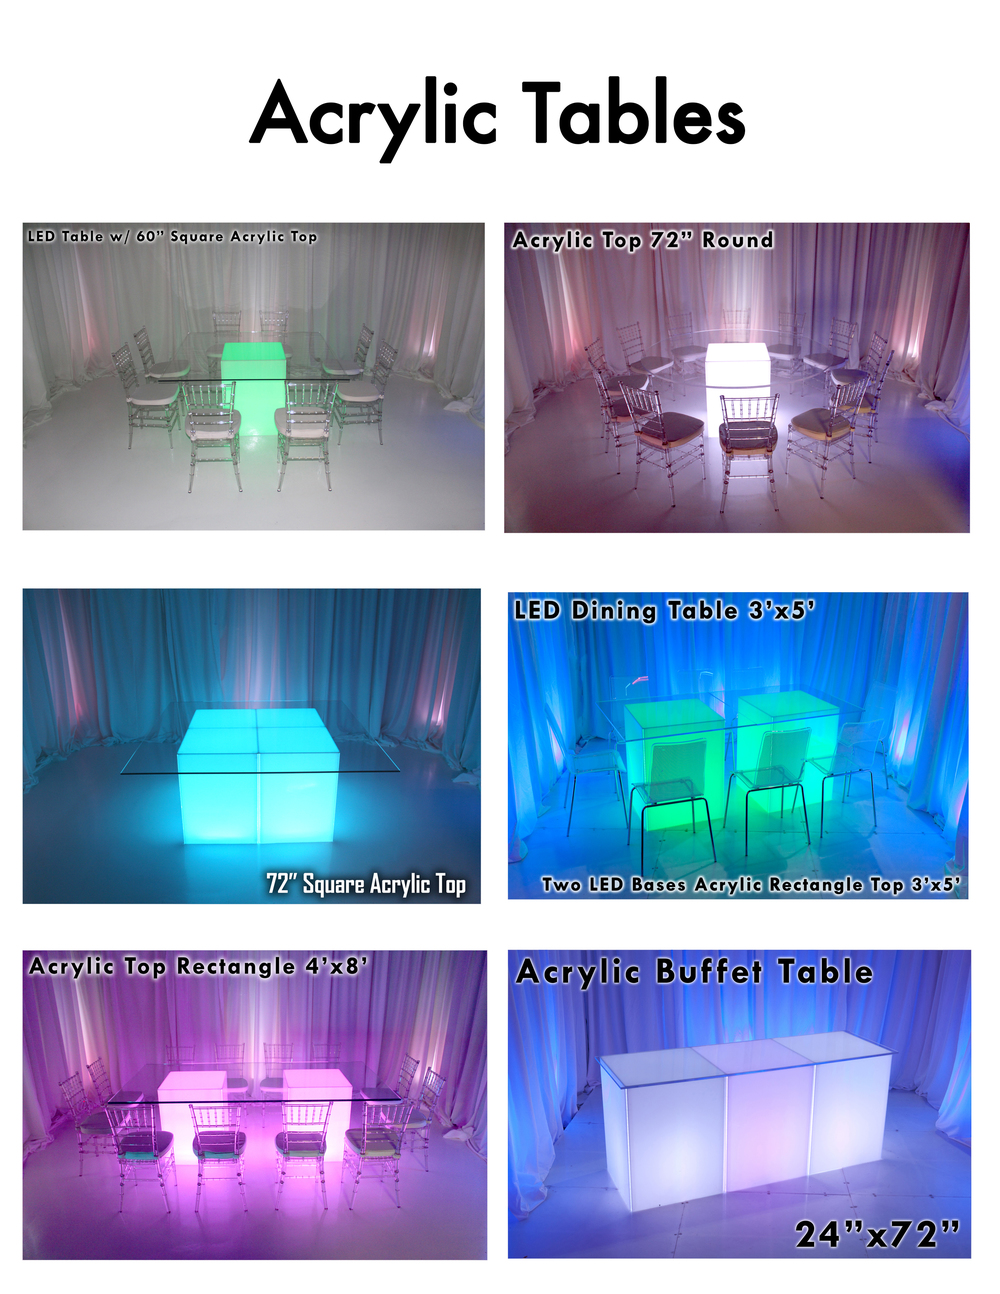 P25_Acrylic Tables.jpg